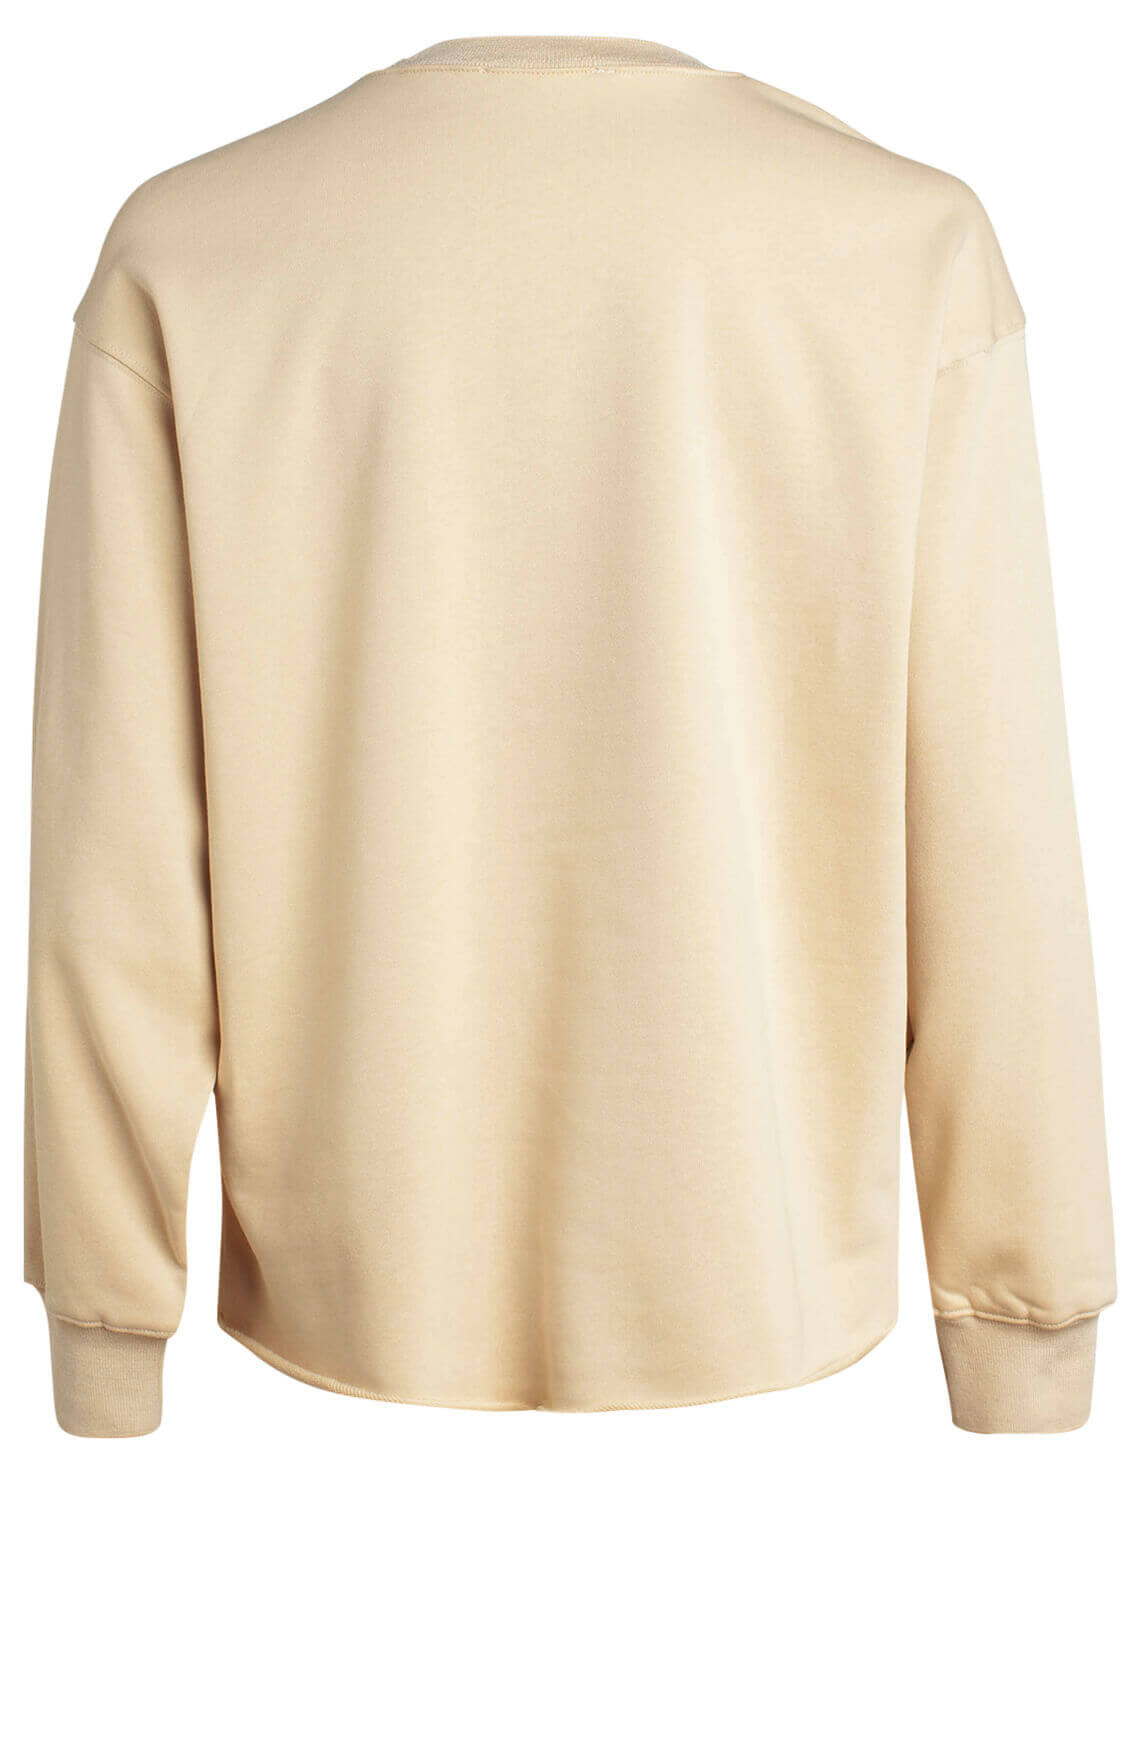 Co Couture Dames Reverse sweater geel